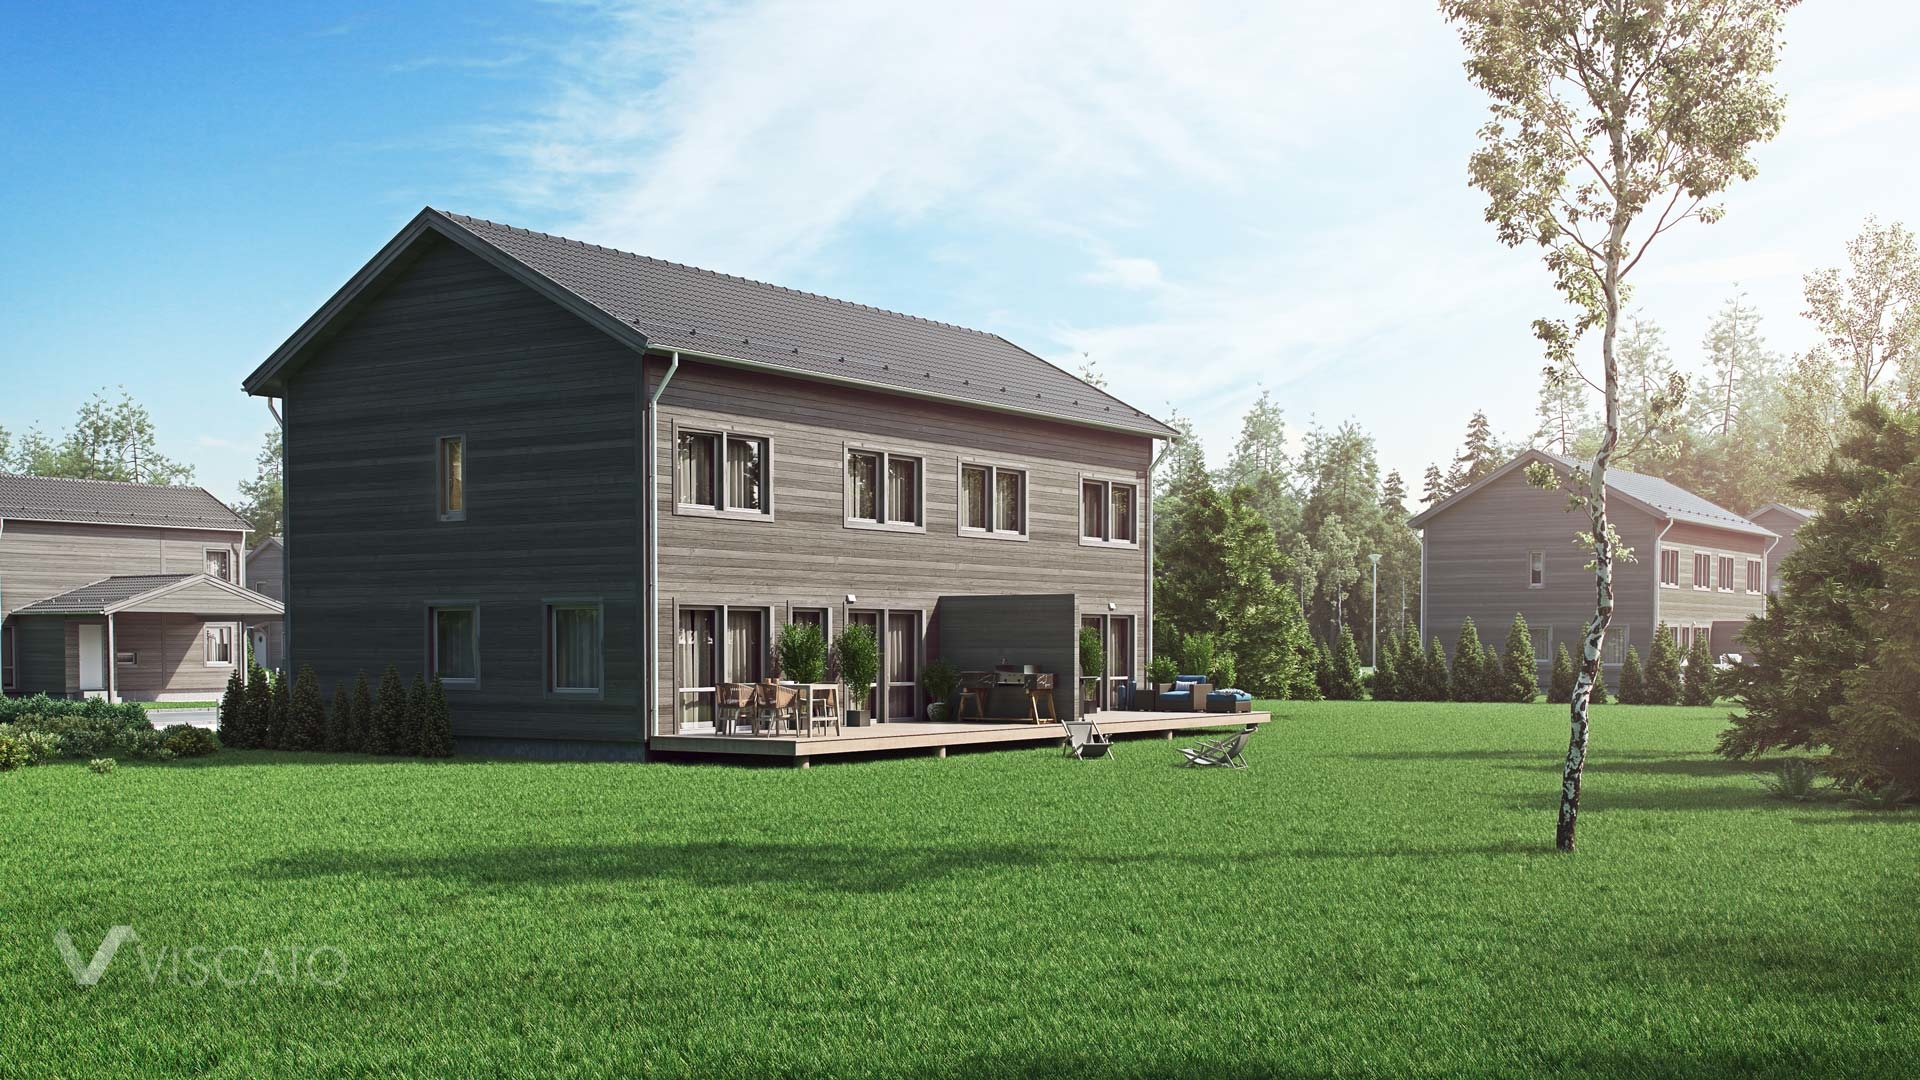 3D exterior visualization of a house with wooden siding- Viscato